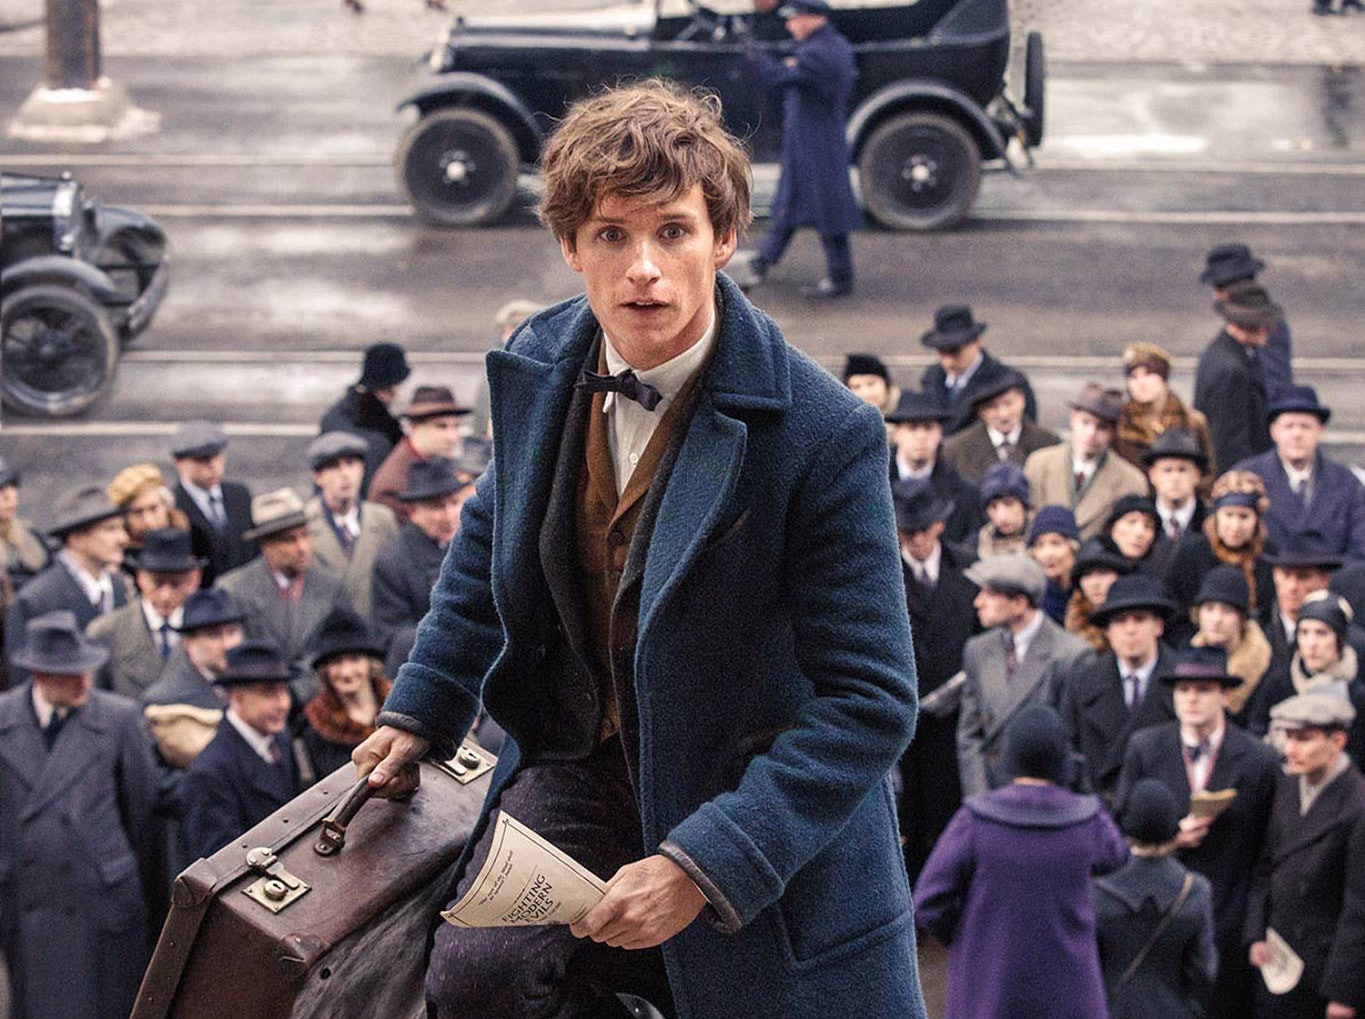 'Fantastic Beasts' Will Make You Feel Sympathy for Death Eaters